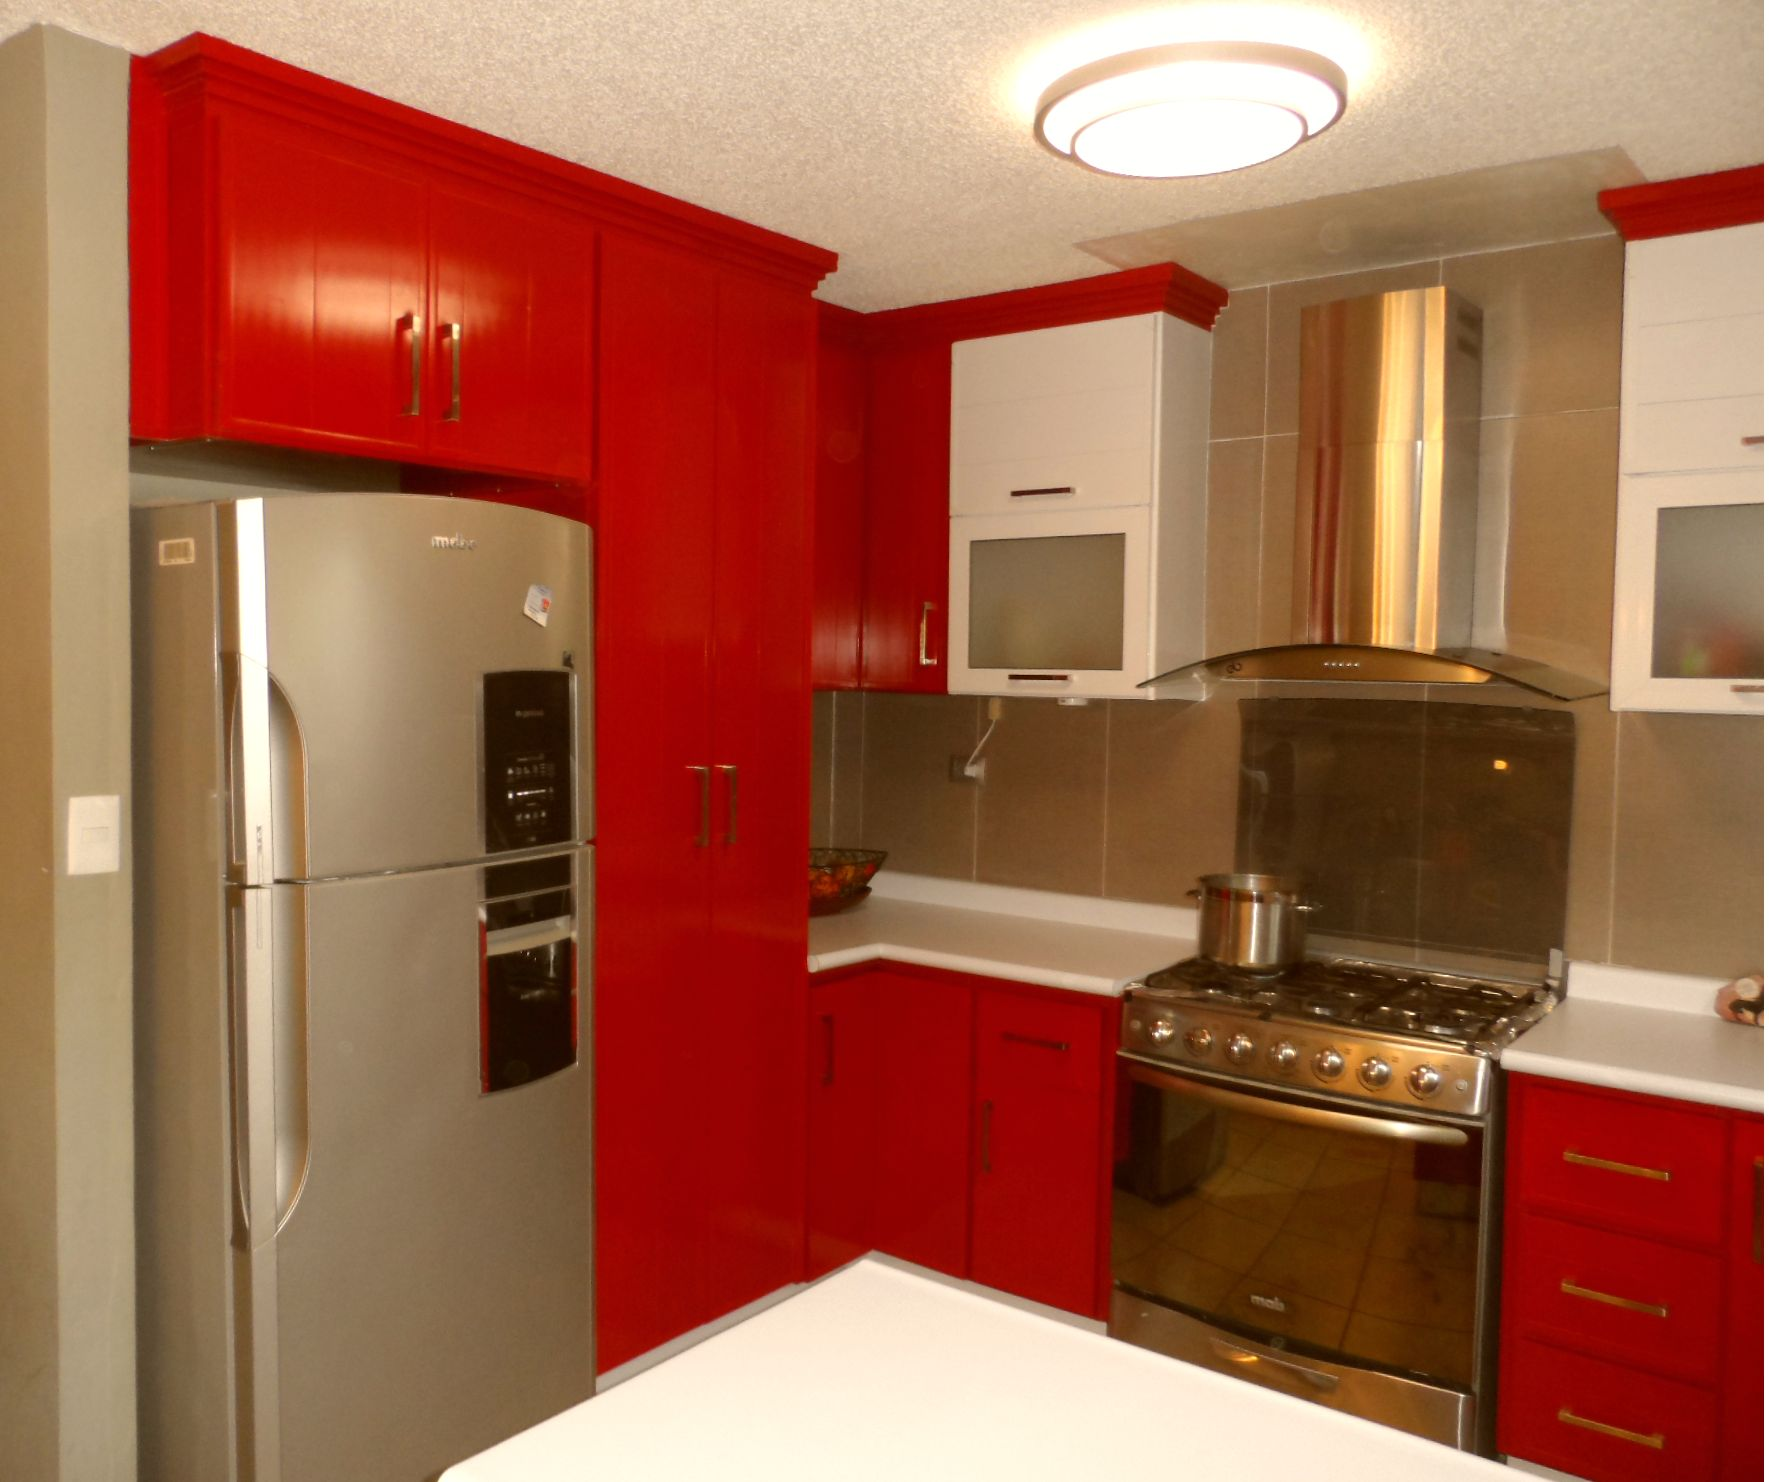 RIGID PLASTIC KITCHEN CABINETS THE IDEAL INVESTMENT